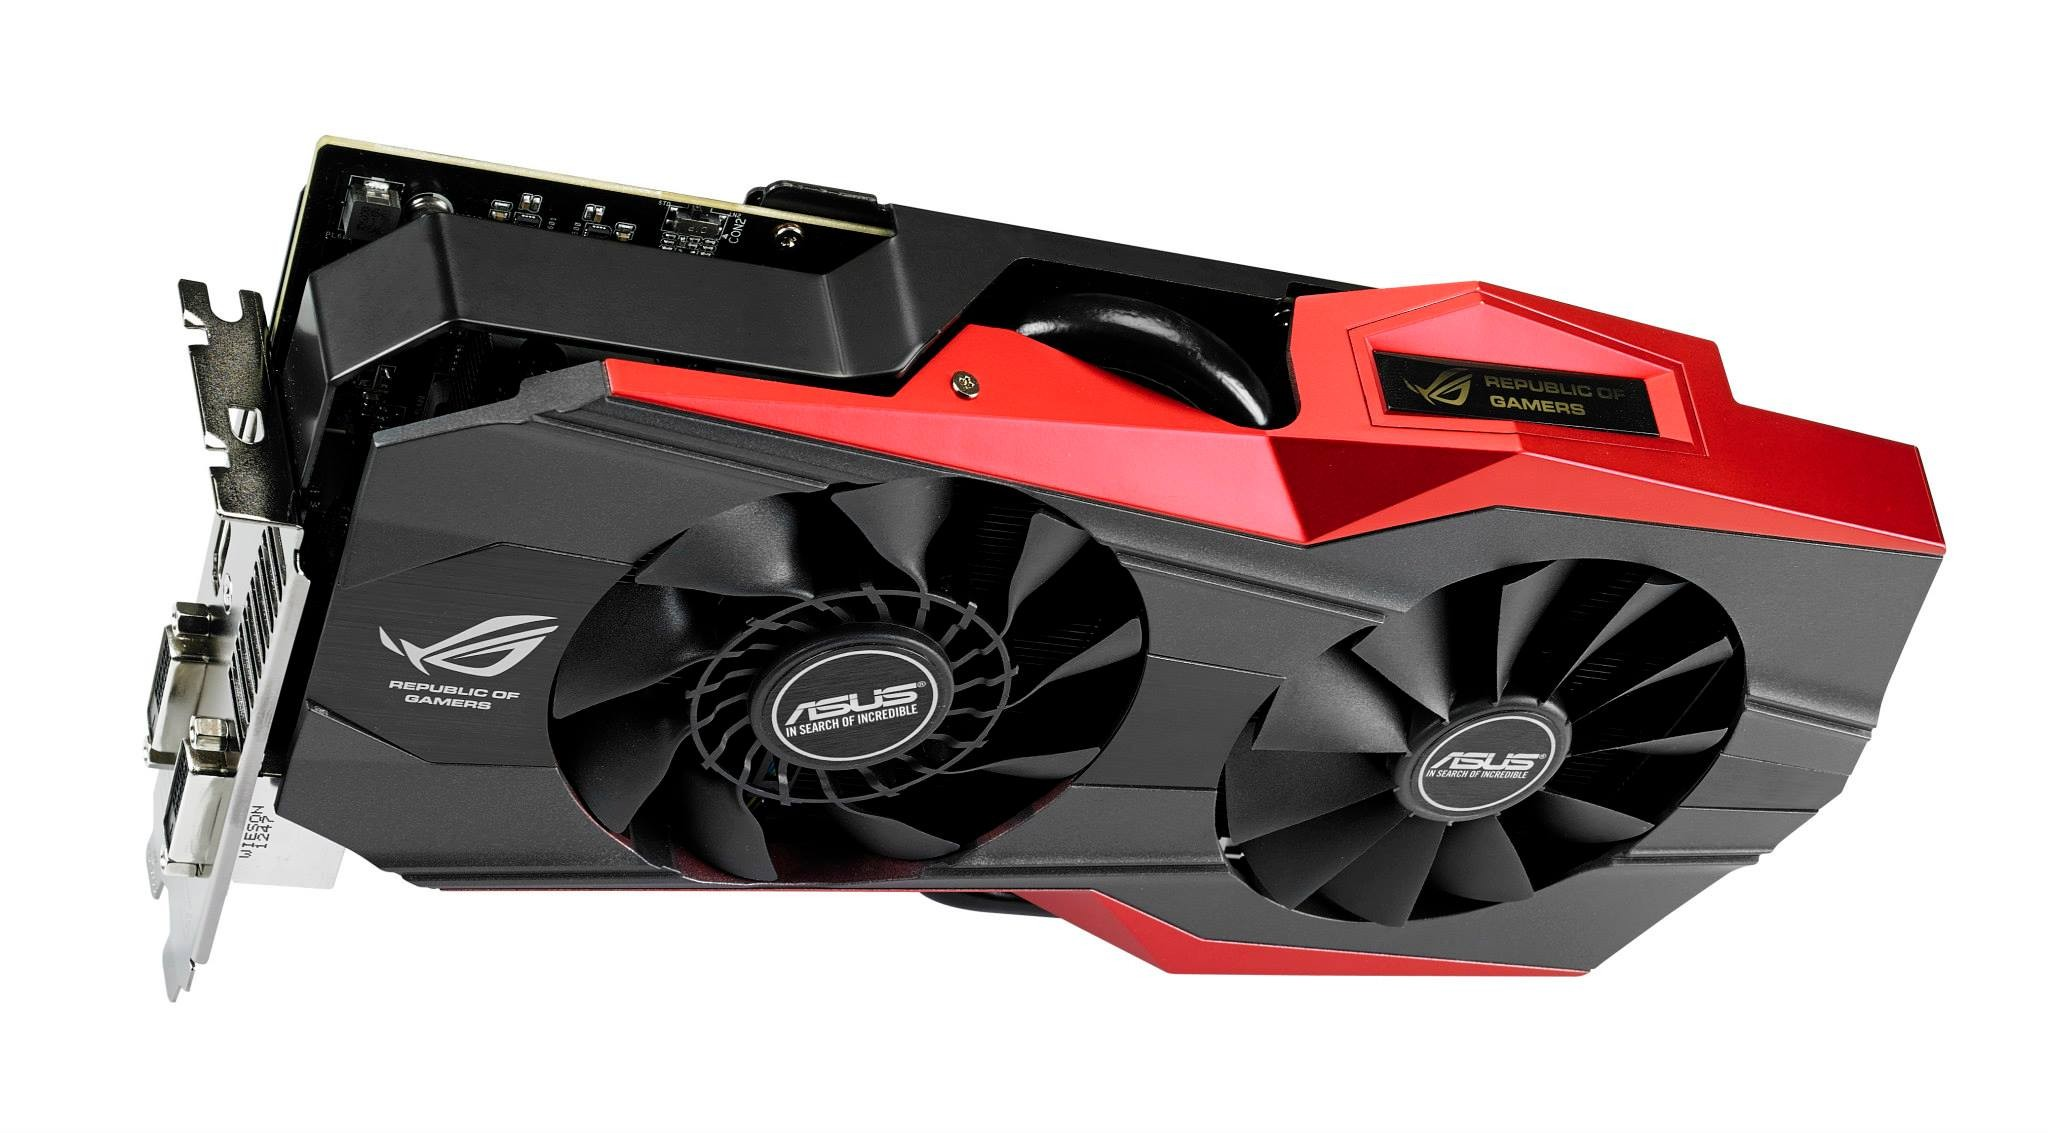 ASUS Reveals The ROG MATRIX R9 290X And MATRIX GTX 780 Ti Graphics Cards TechPowerUp Forums